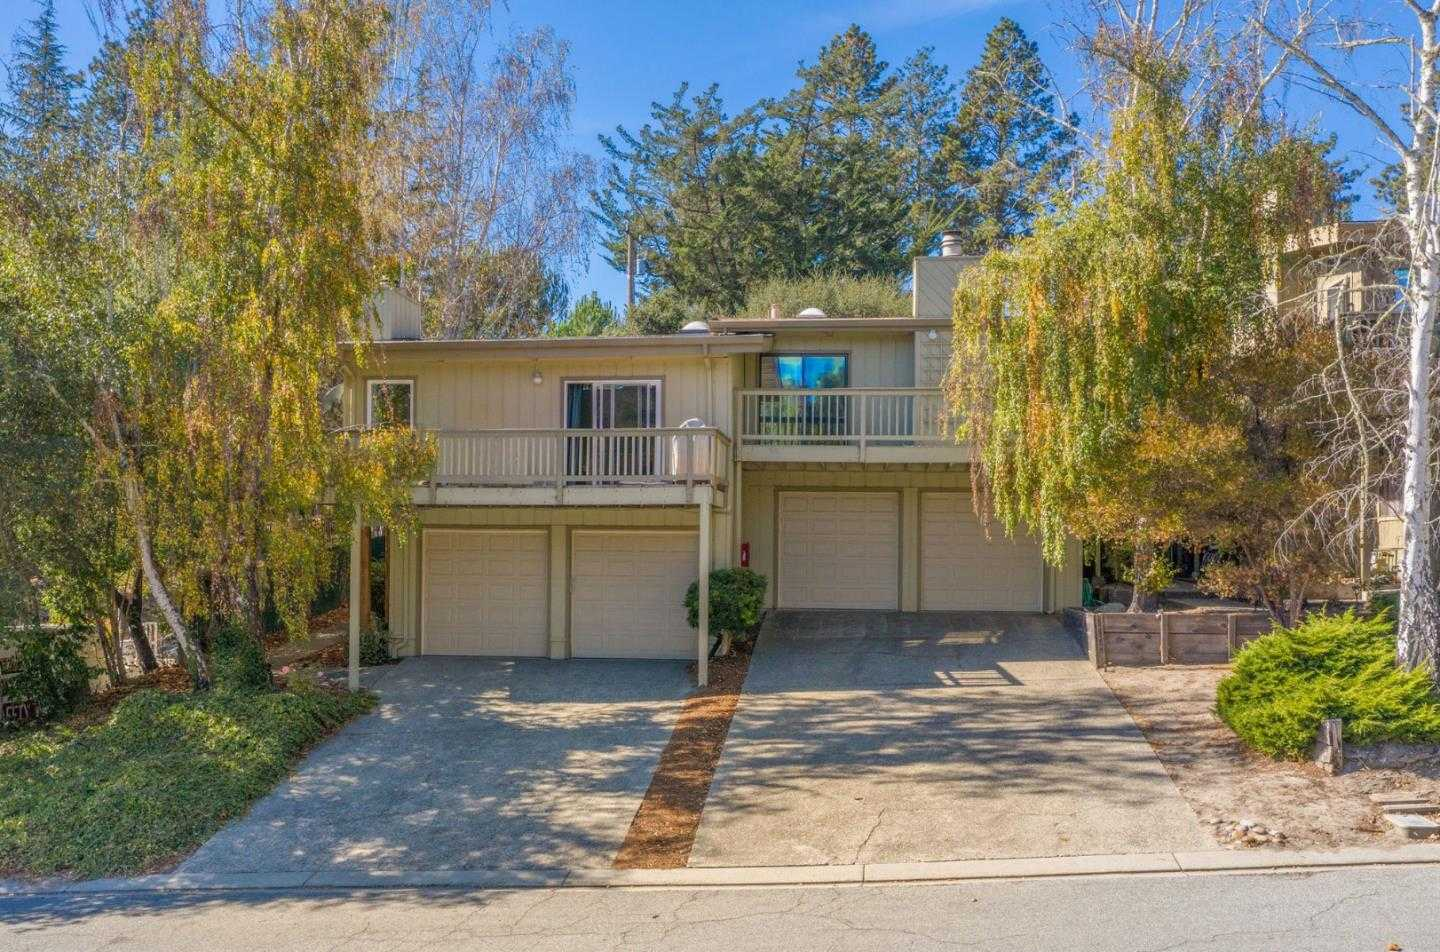 25 Erba LN SCOTTS VALLEY, CA 95066